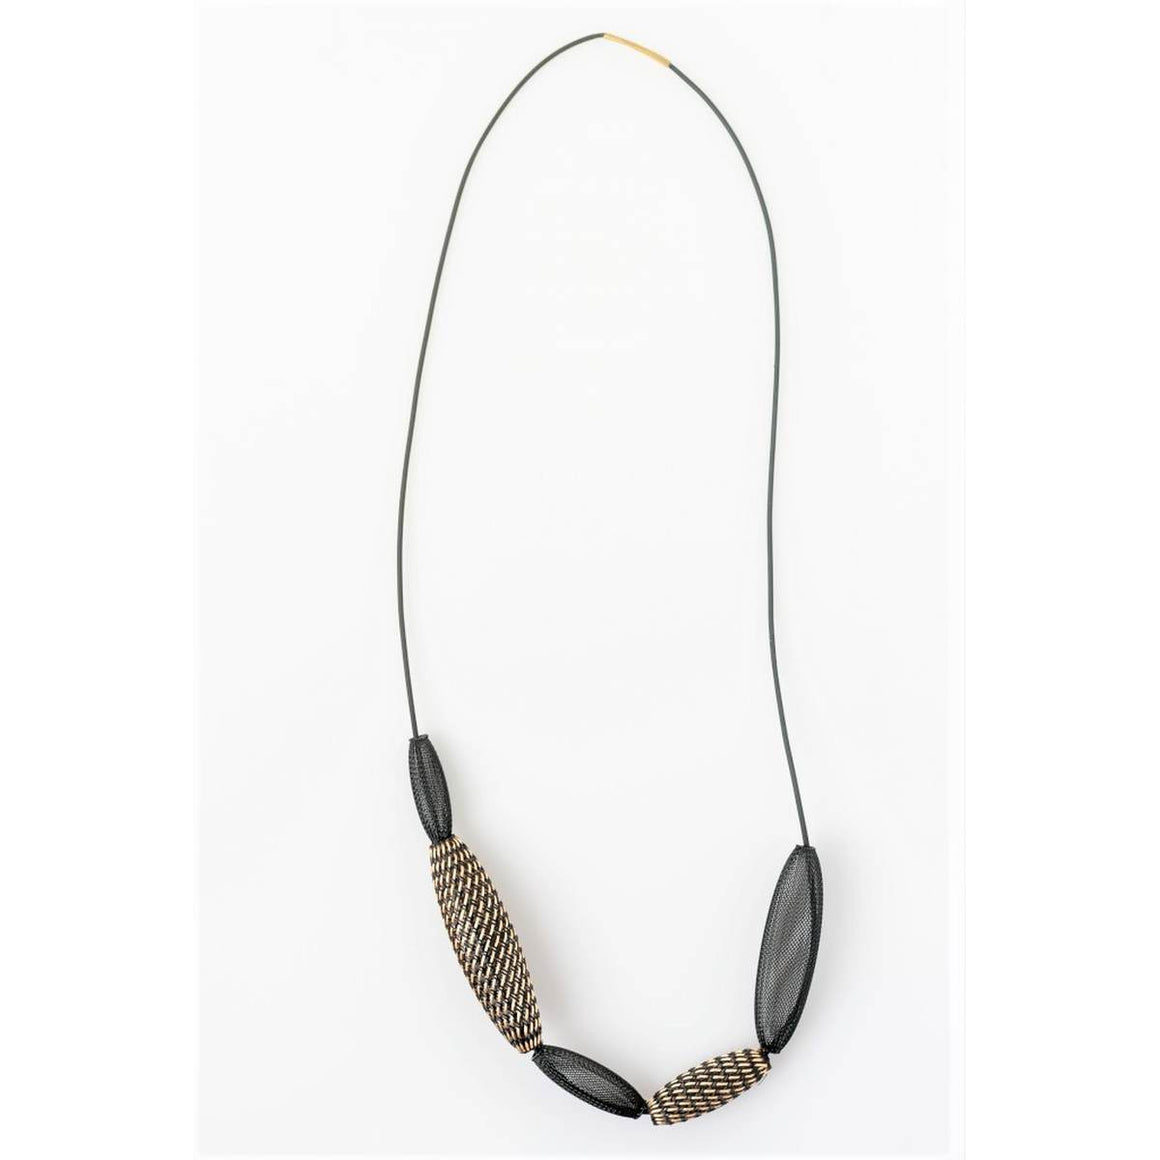 A necklace in bronze and black. Five variegated beads made of heat treated nylon are strung on a waxed cotton.